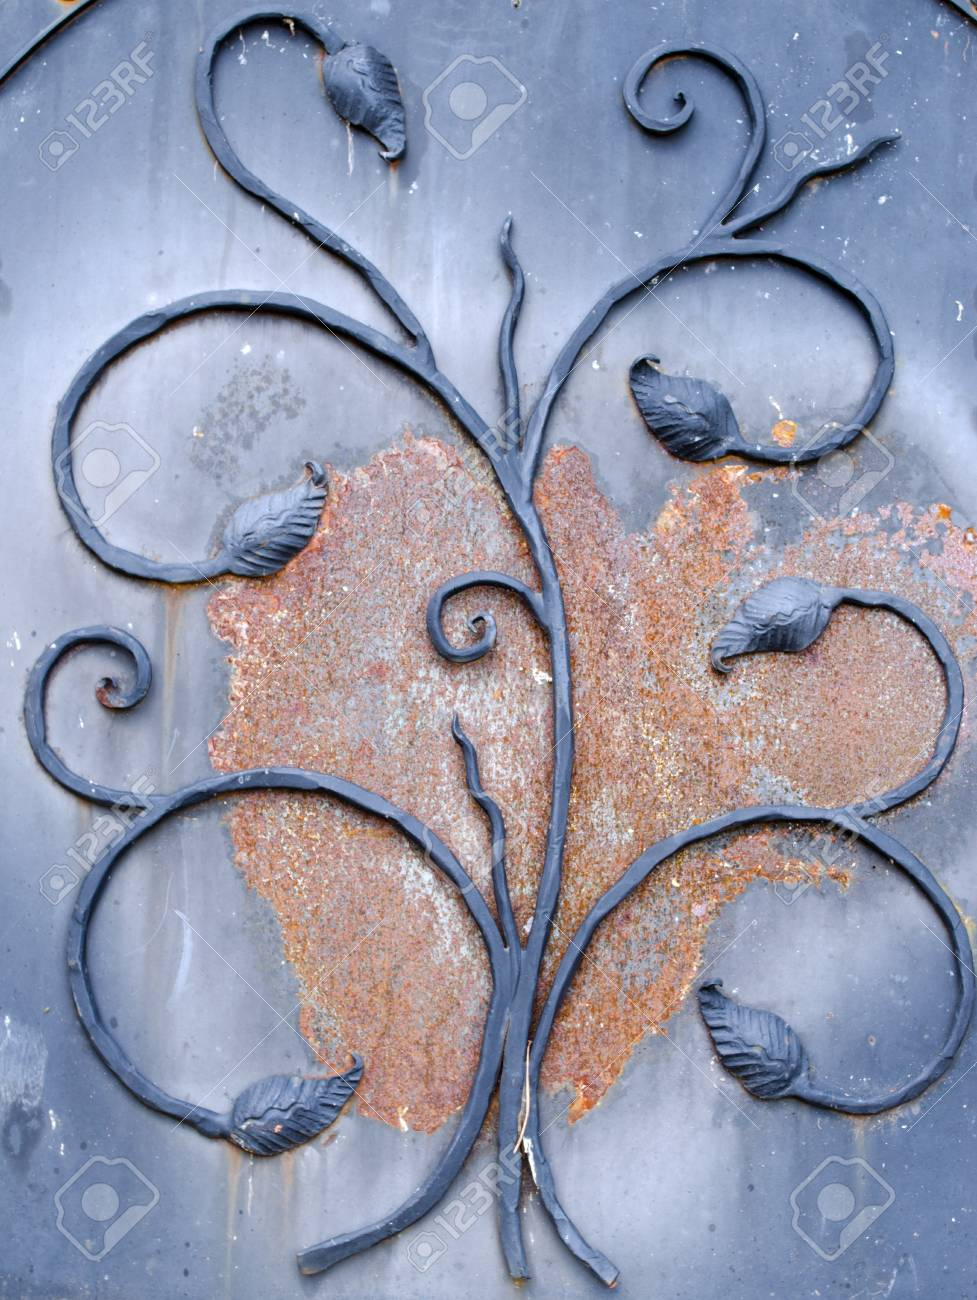 background of retro rusty metal gate closeup with decorations Stock Photo - 18123683